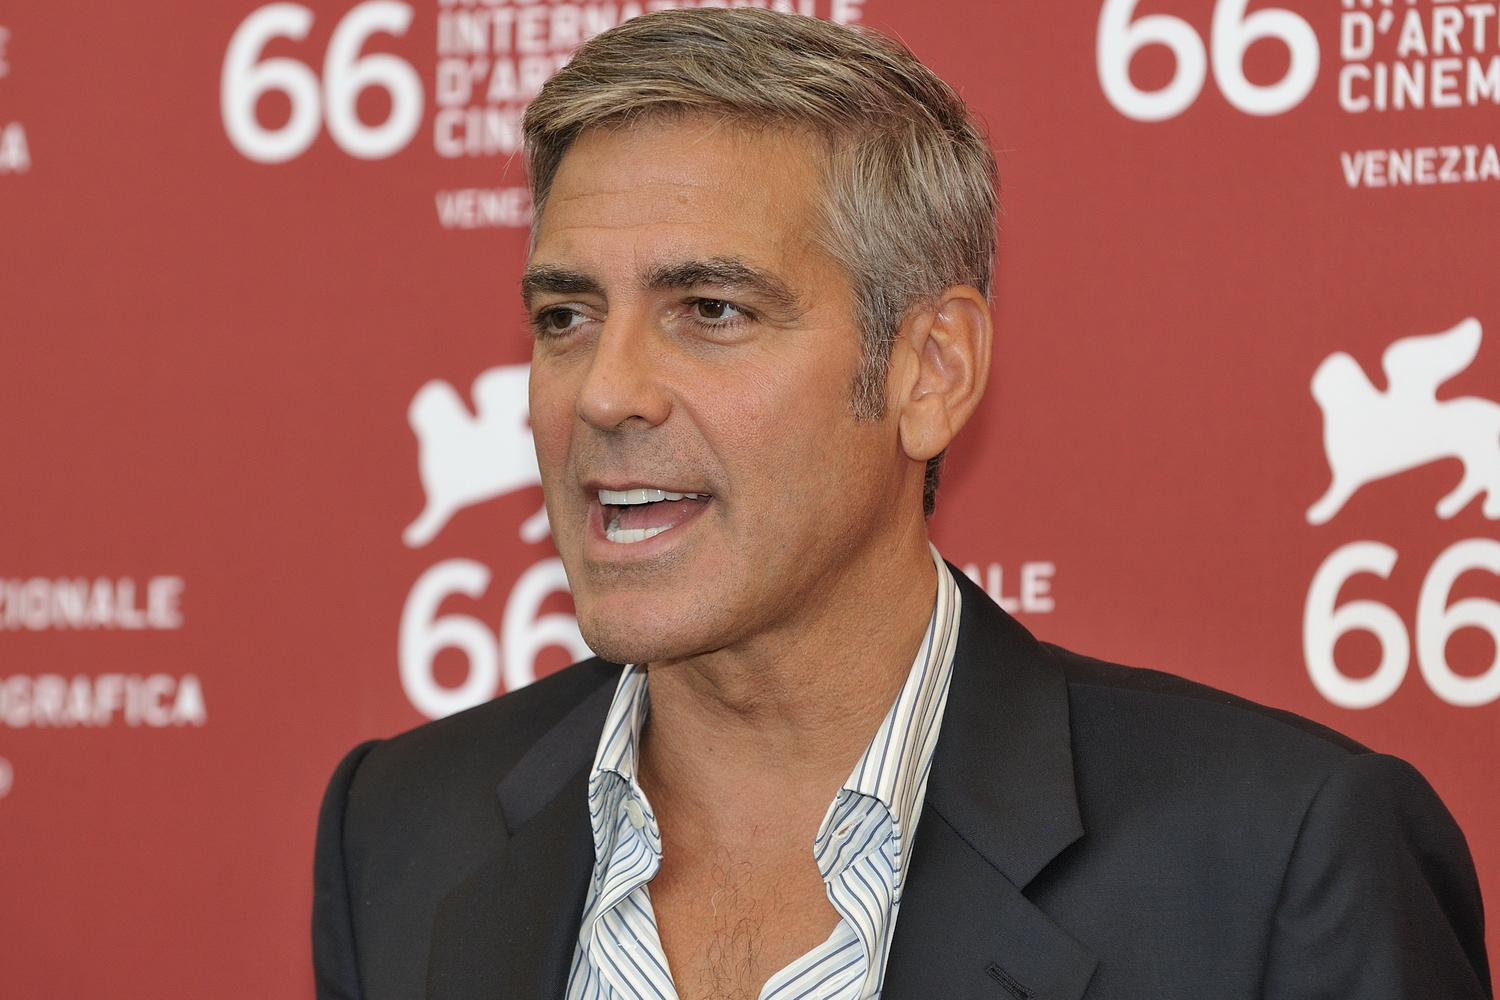 George Clooney 66ème Festival de Venise Mostra 5 10 Things You Probably Didn't Know About George Clooney